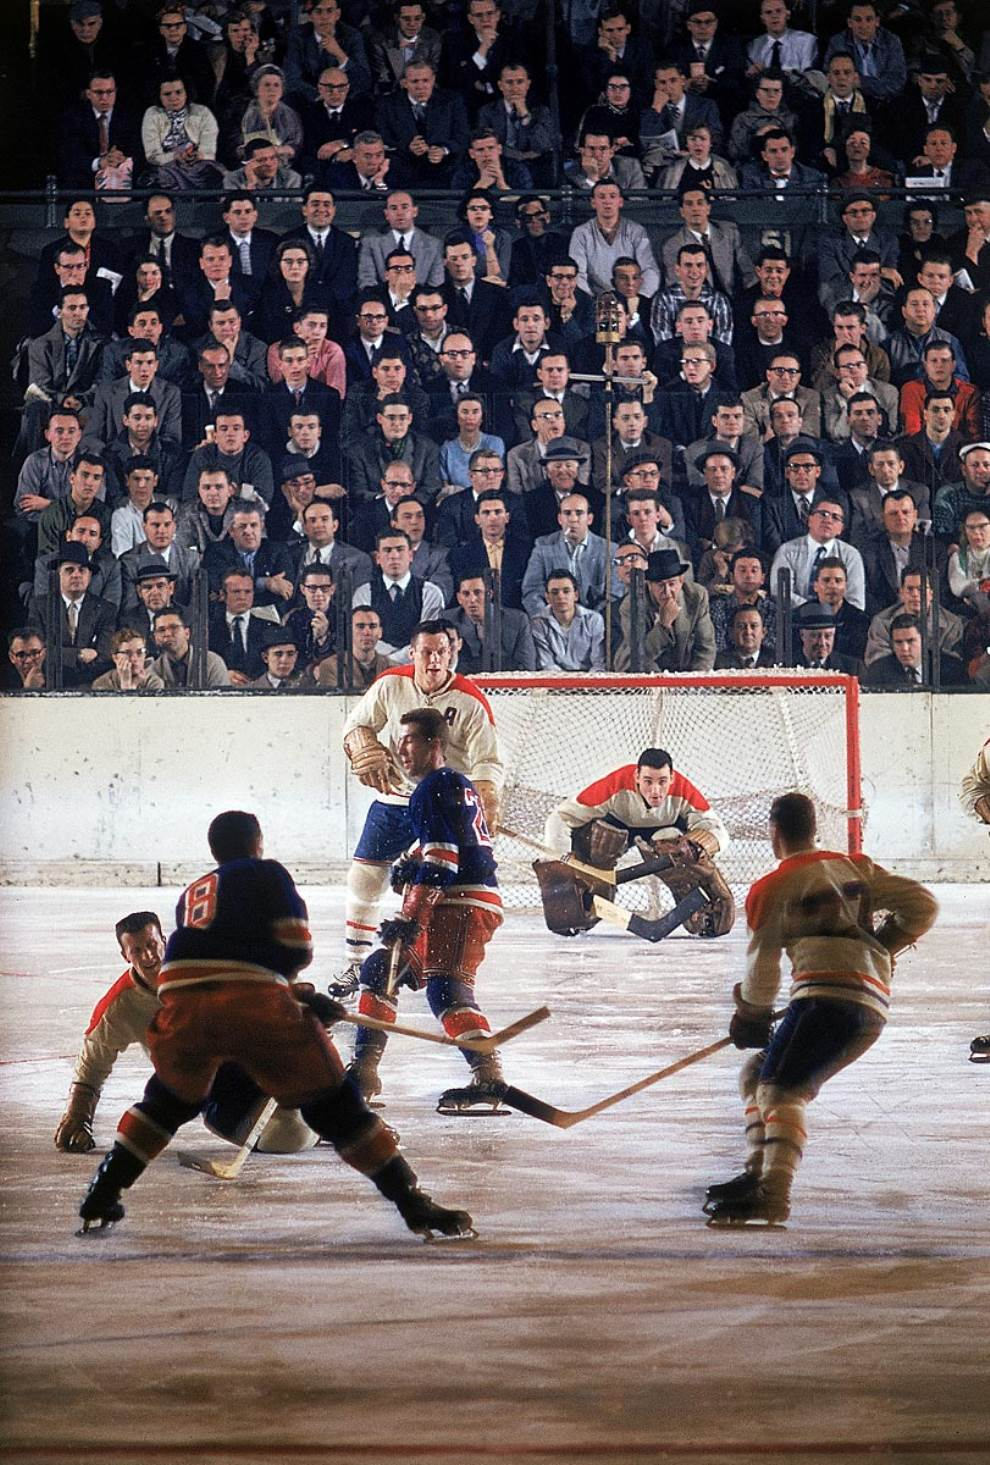 montreal canadiens vs new york rangers madison square garden 1957 The Puck Stops Here